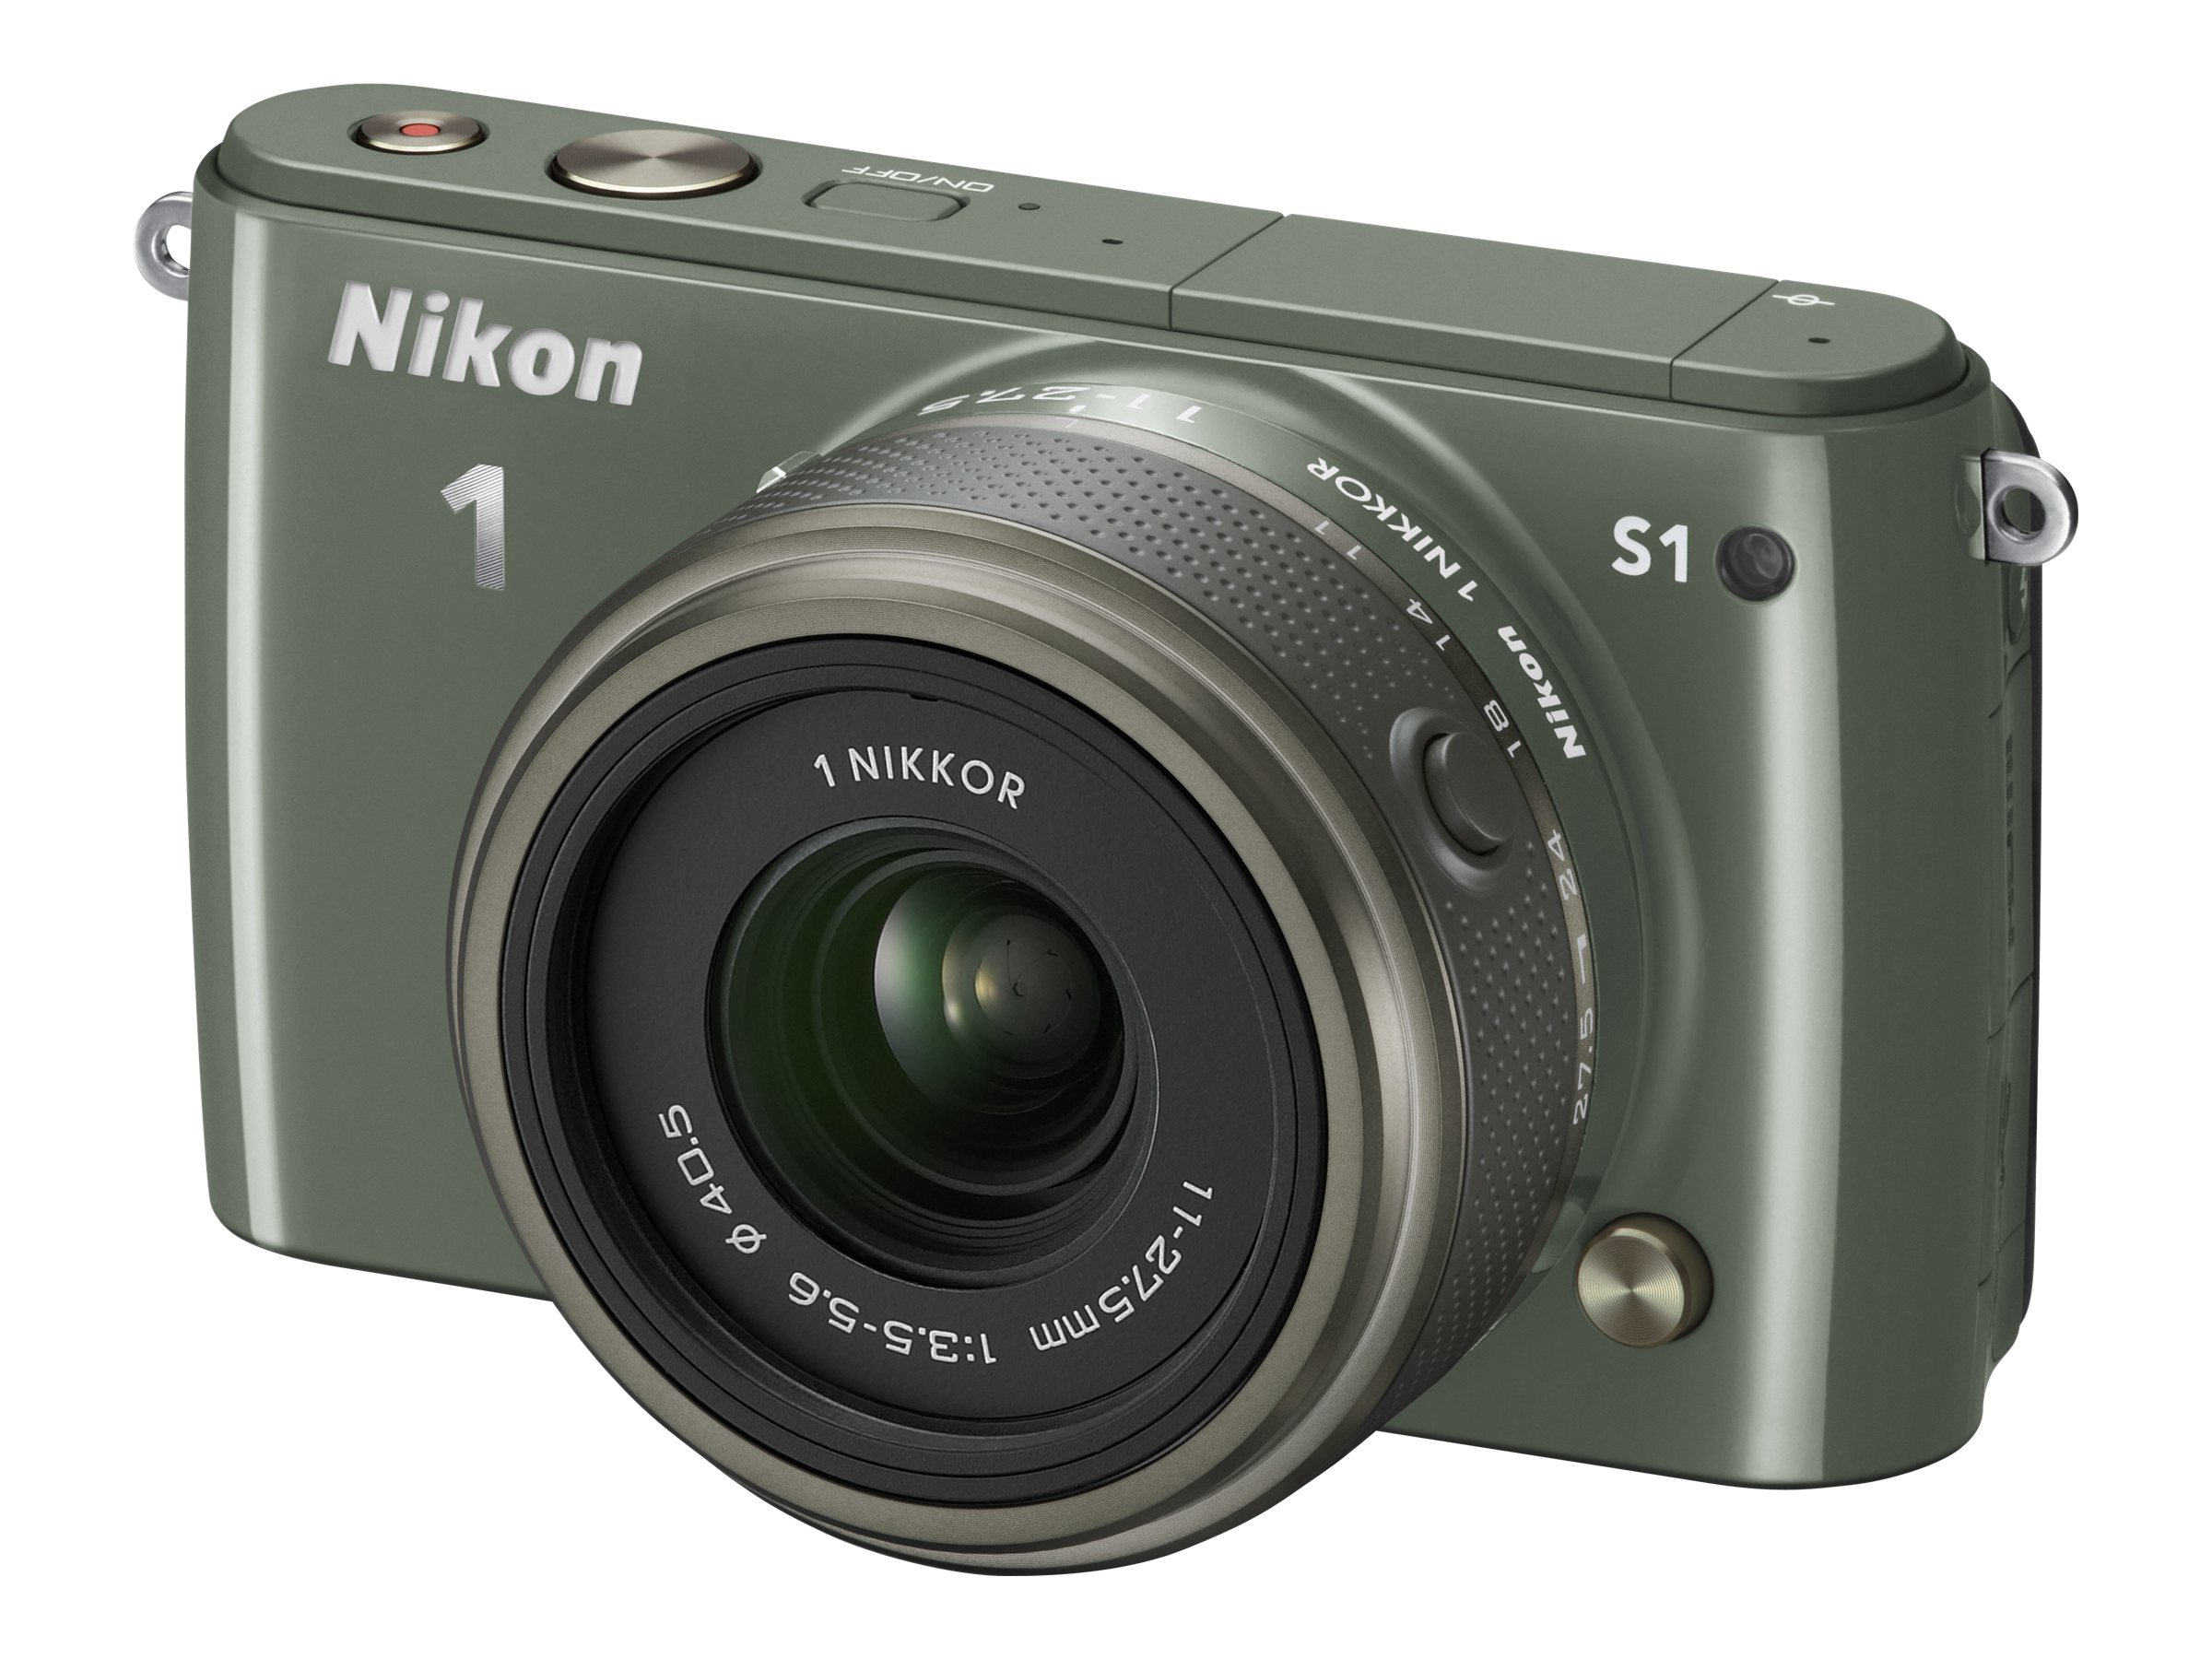 Nikon S1 Interchangable Lens Digital Camera, 10.1MP, Khaki with 11-27.5mm Lens, 27621, 15256586, Cameras - Digital - SLR